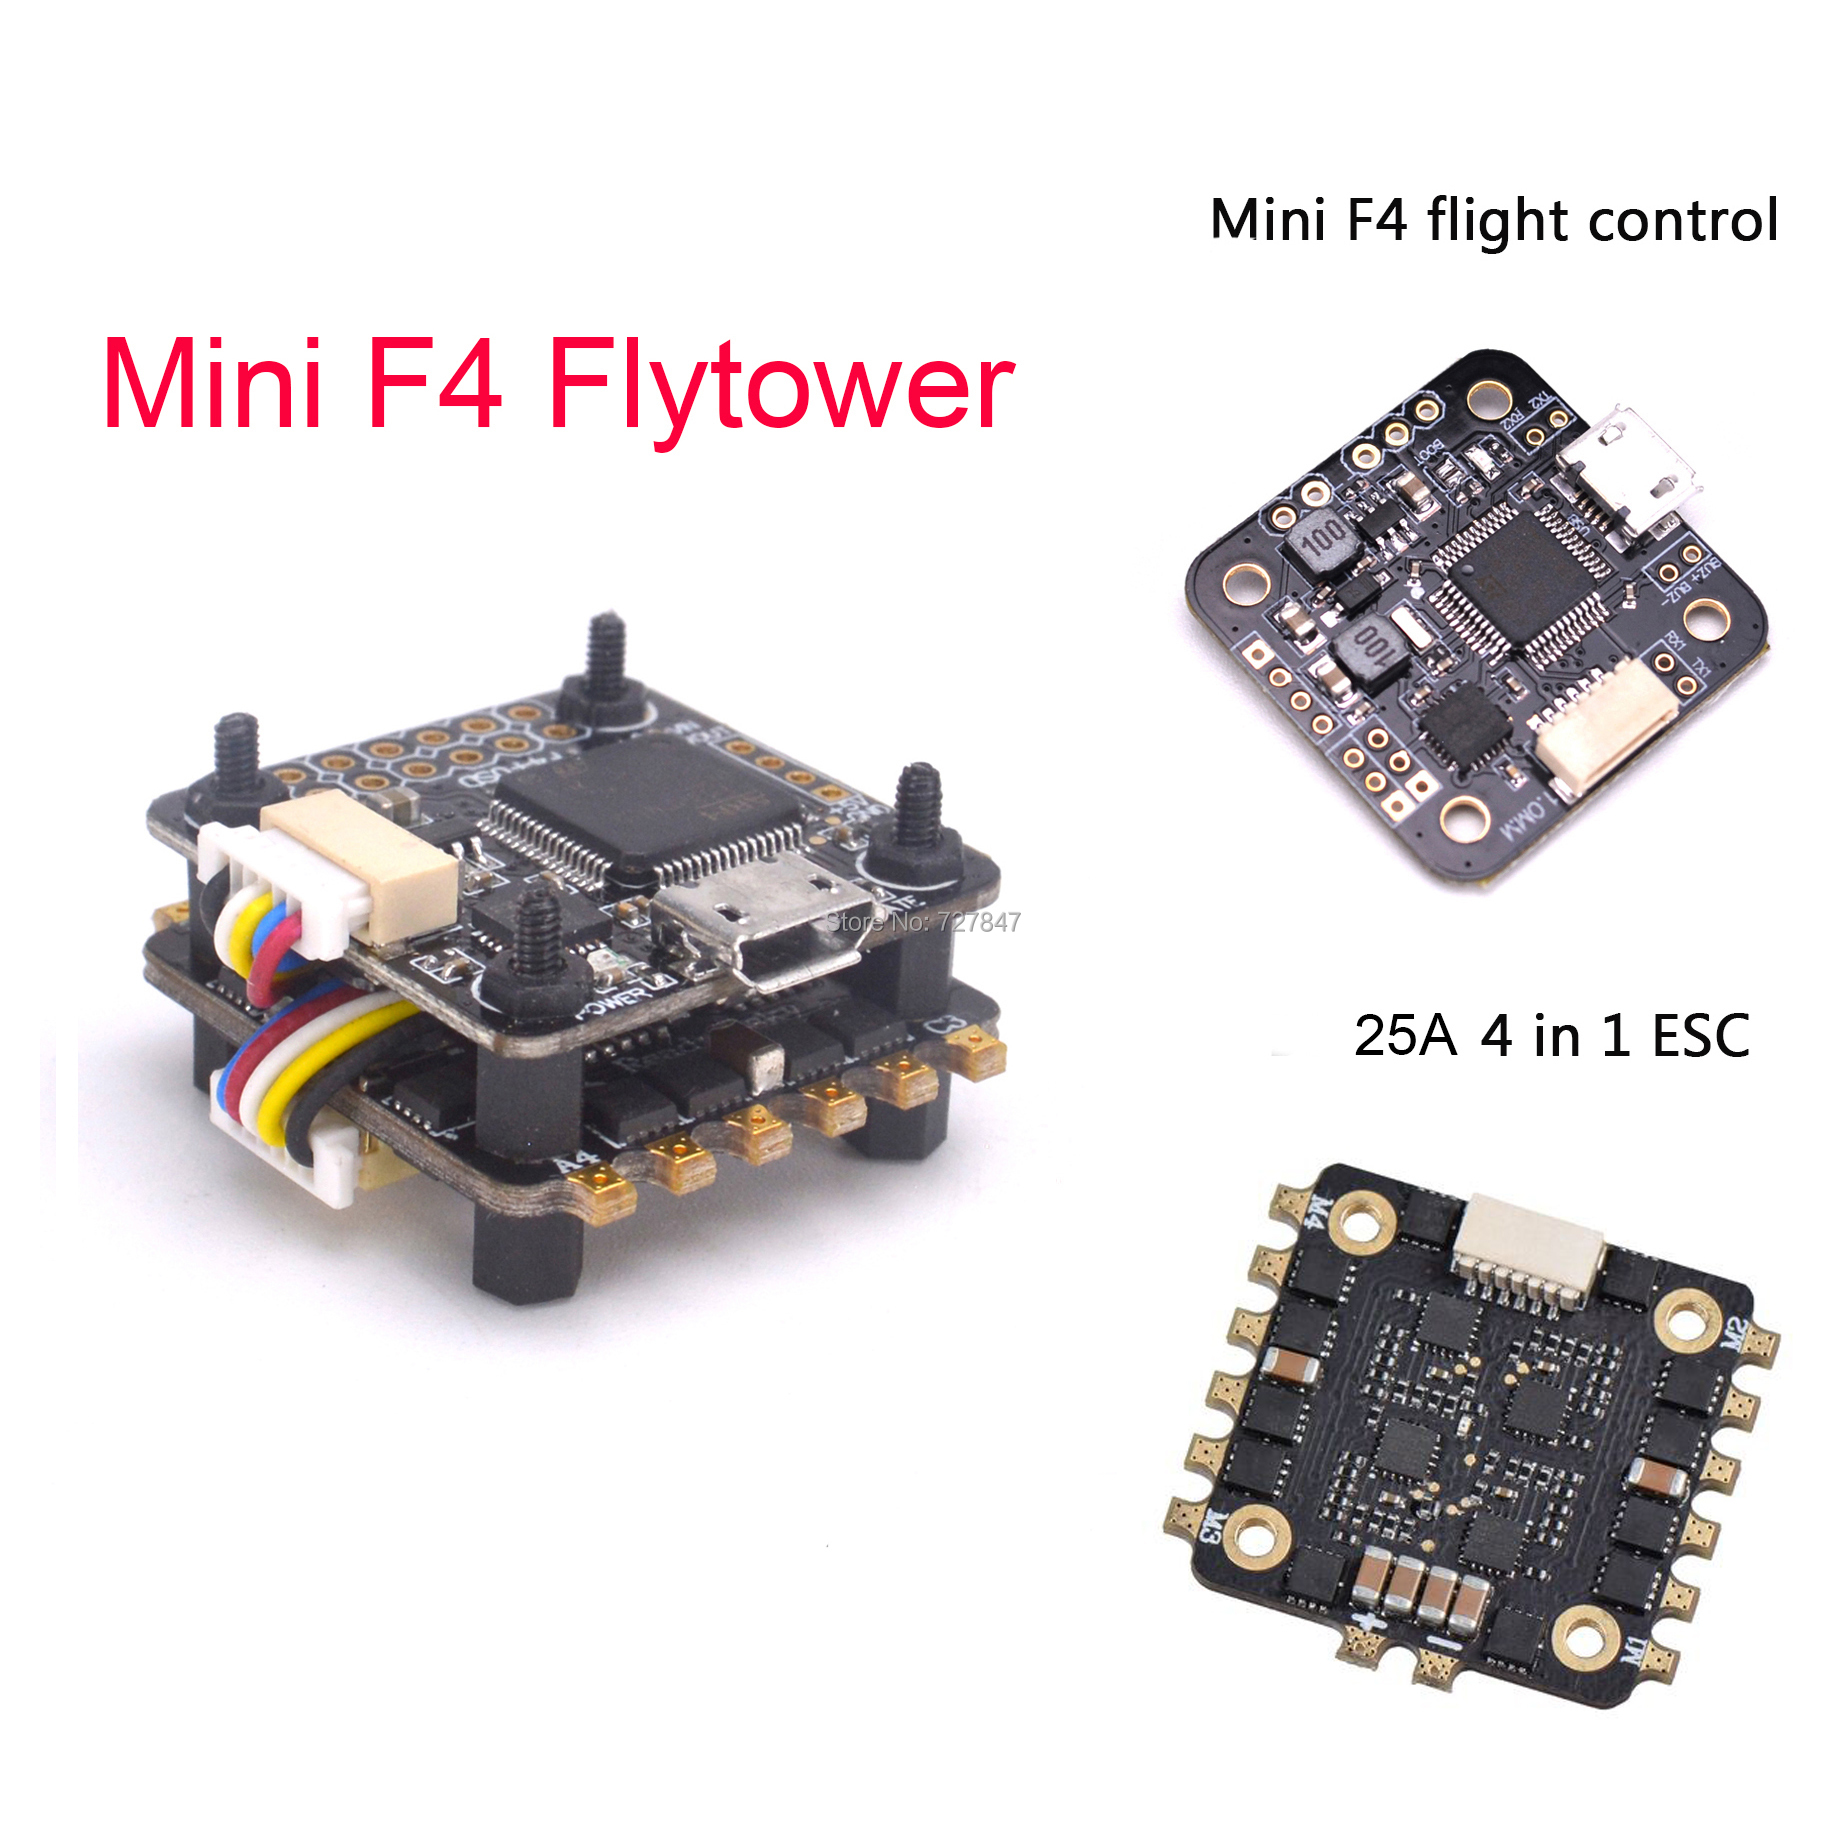 Mini F3 / F4 Flytower Flight control Integrated OSD 4 in 1 Built-in 5V 1A BEC <font><b>25a</b></font> <font><b>ESC</b></font> Support Dshot For FPV RC Drone image